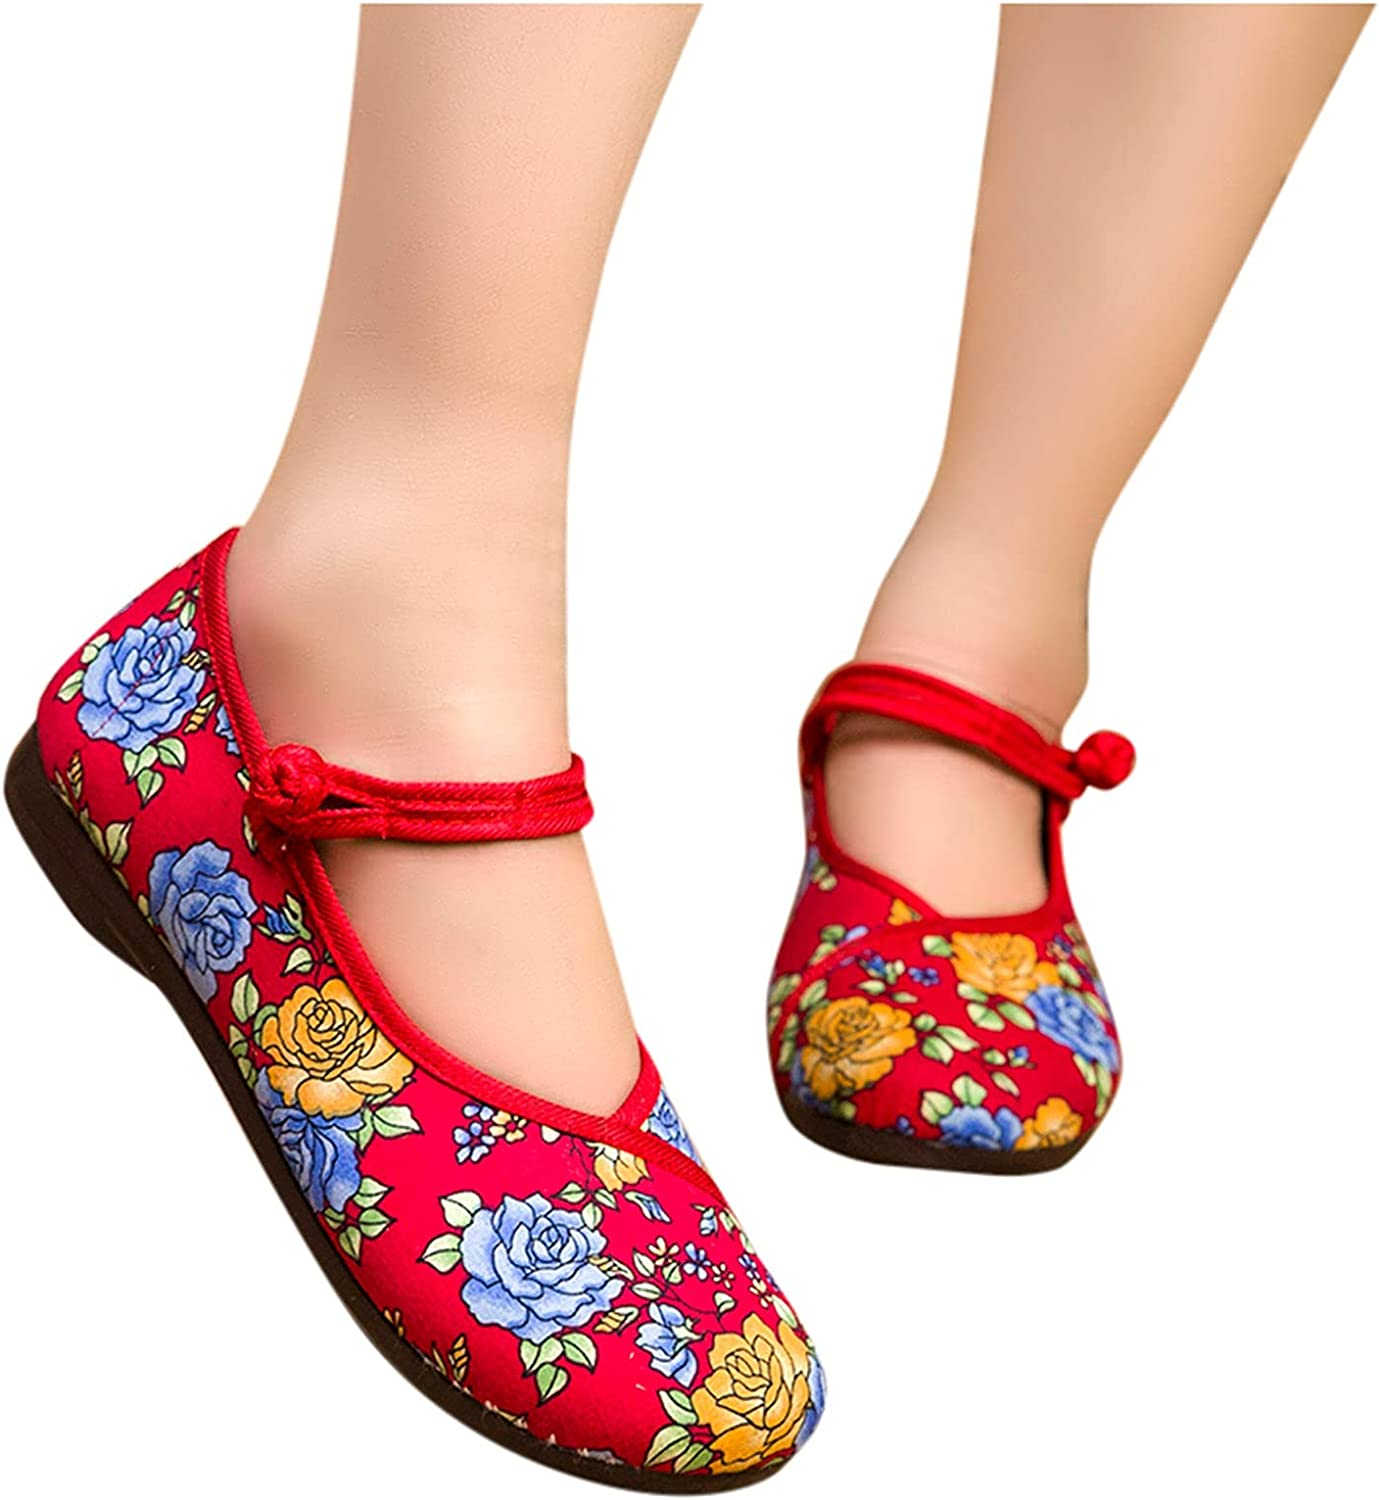 Womens Casual Shoes Comfy Ranking TOP3 Max 82% OFF Slip On Embroidered Wedges Cloth